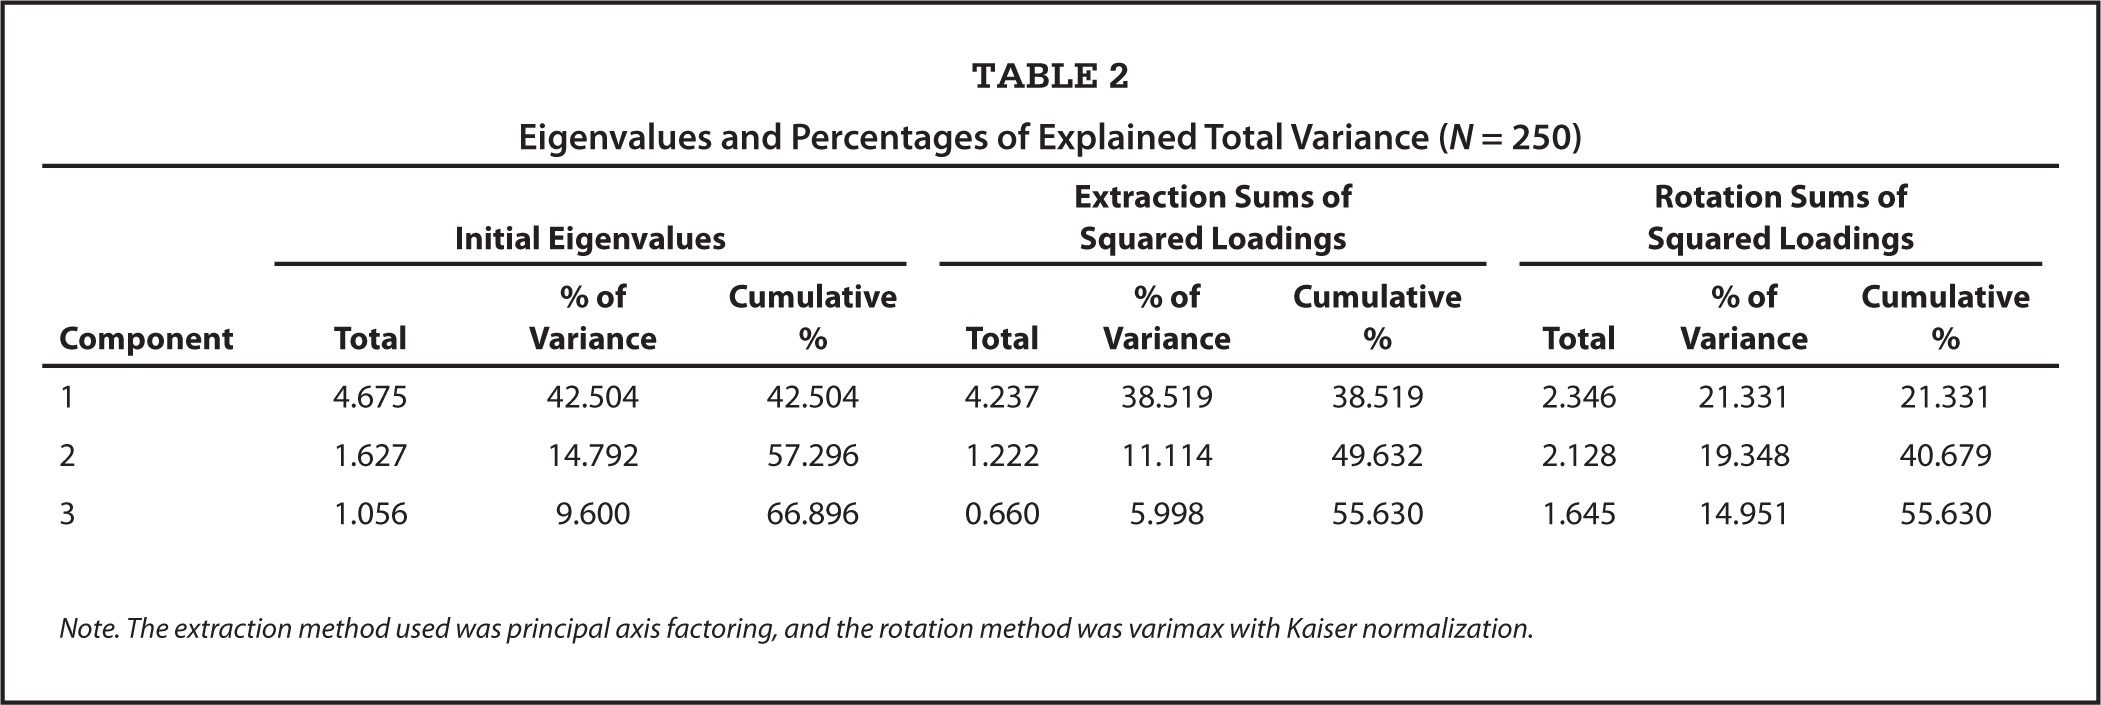 understanding pearson s r effect size and percentage of variance explained exercise 24 Pearson's correlation coefficient correlation is a technique for investigating the relationship between two quantitative, continuous variables, for example, age and blood pressure pearson's correlation coefficient (r) is a measure of the strength of the association between the two variables.